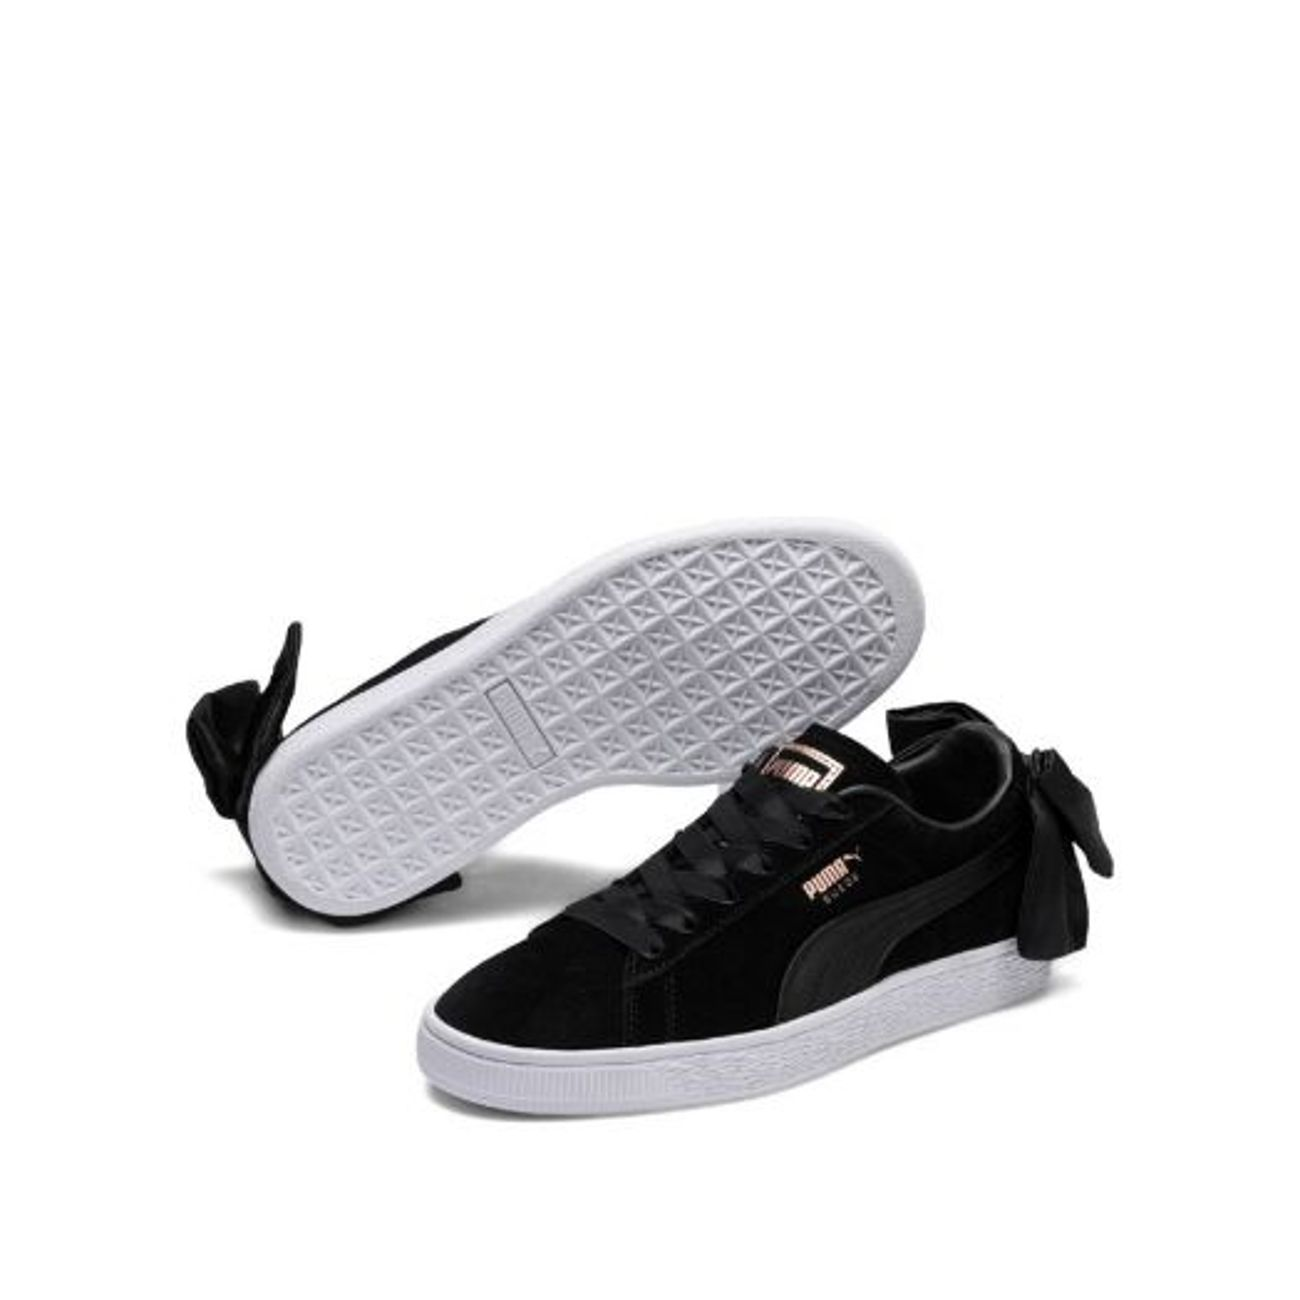 taille 40 1f32e 7b865 Mode- Lifestyle femme PUMA Chaussures cuir avec noeud suede BOW